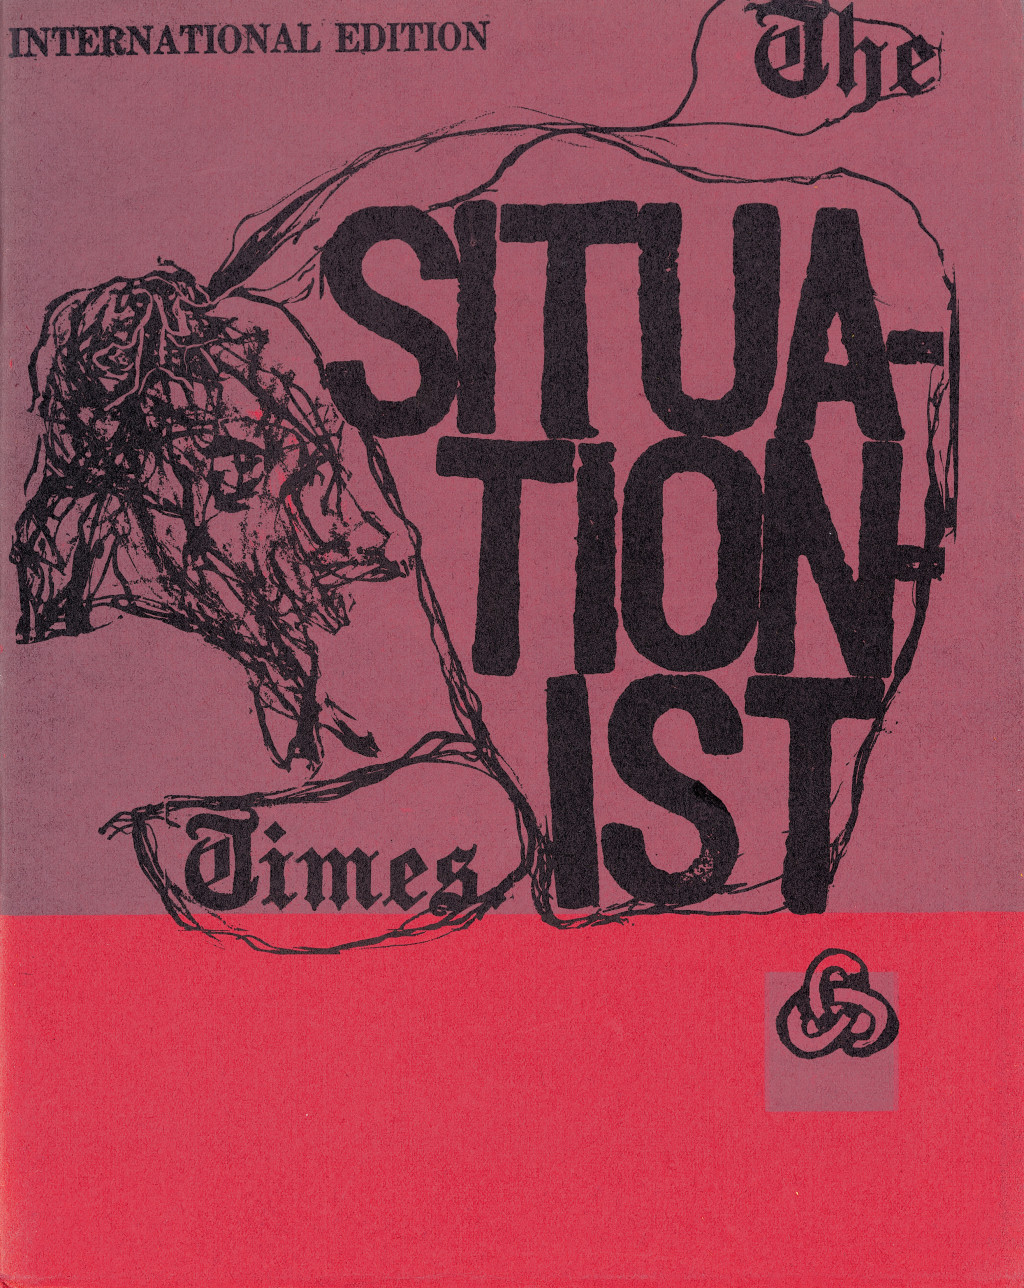 'The Situationist Times' nr. 1, mei 1962.